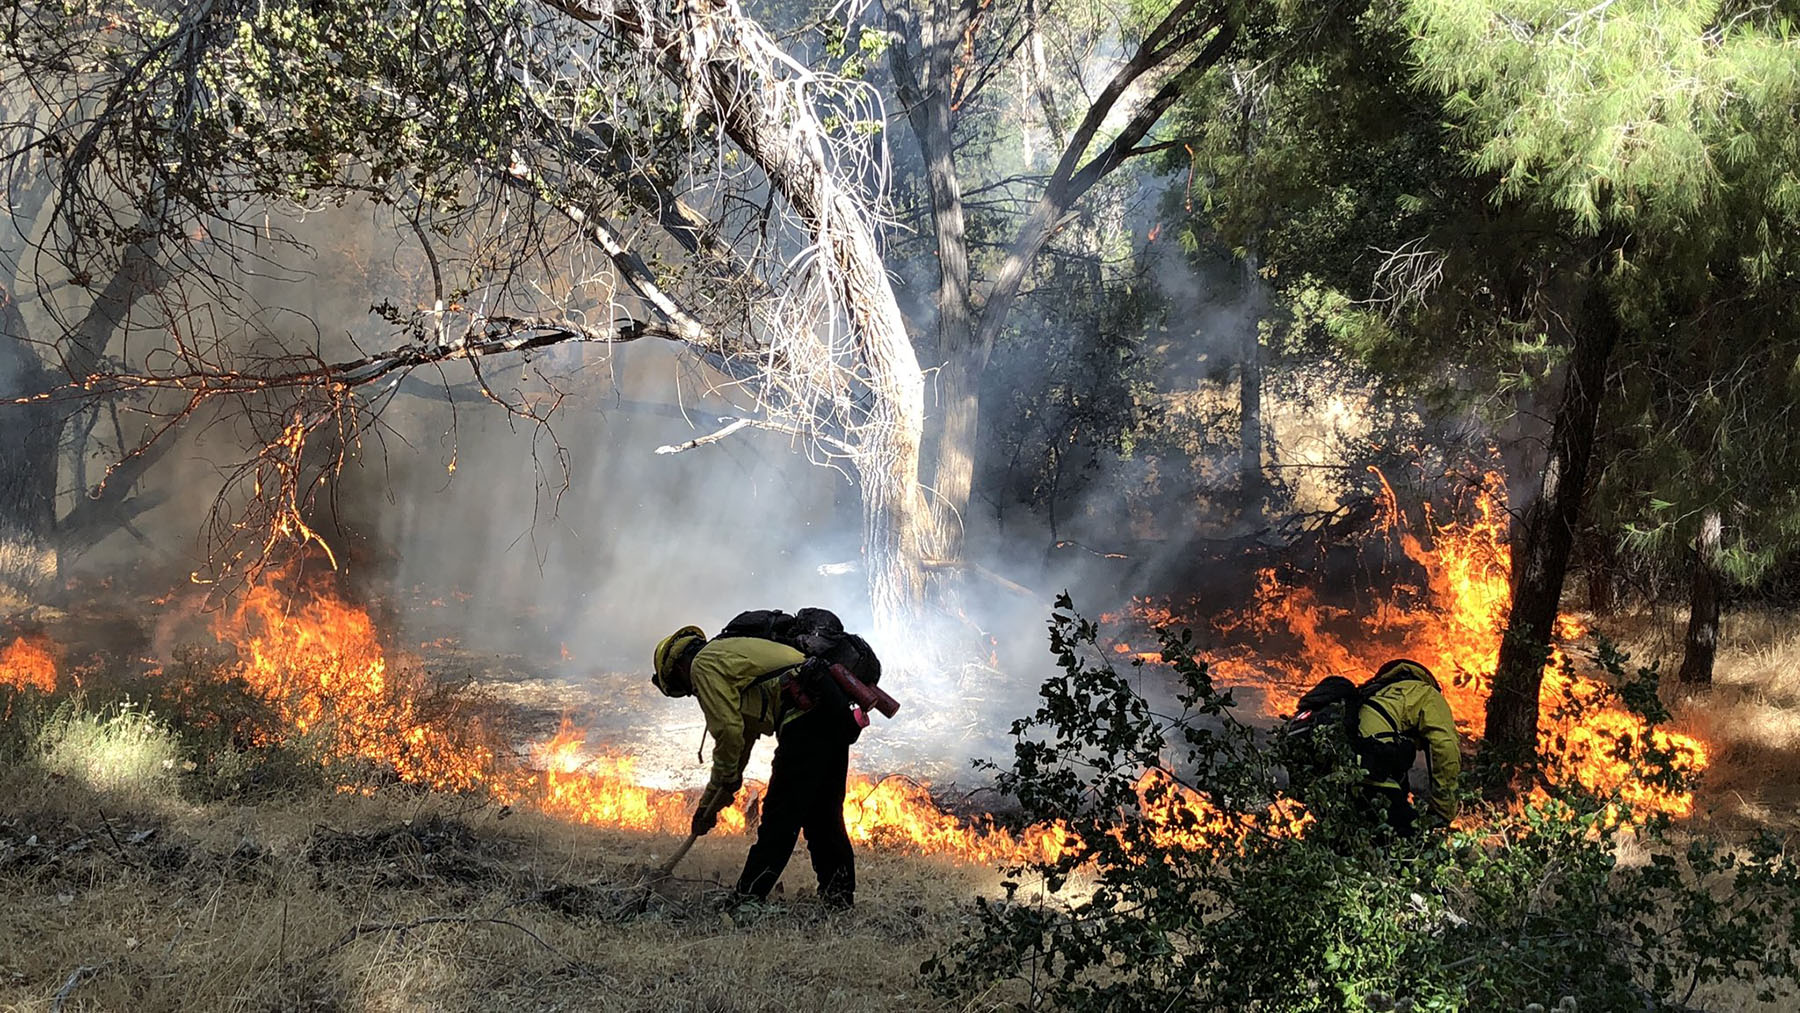 Fire crews battle blazes in Angeles National Forest on August 12, 2020, in an effort to quell the Lake Fire, which is one of 24 fires currently burning in California. (Photo courtesy of Angeles National Forest)